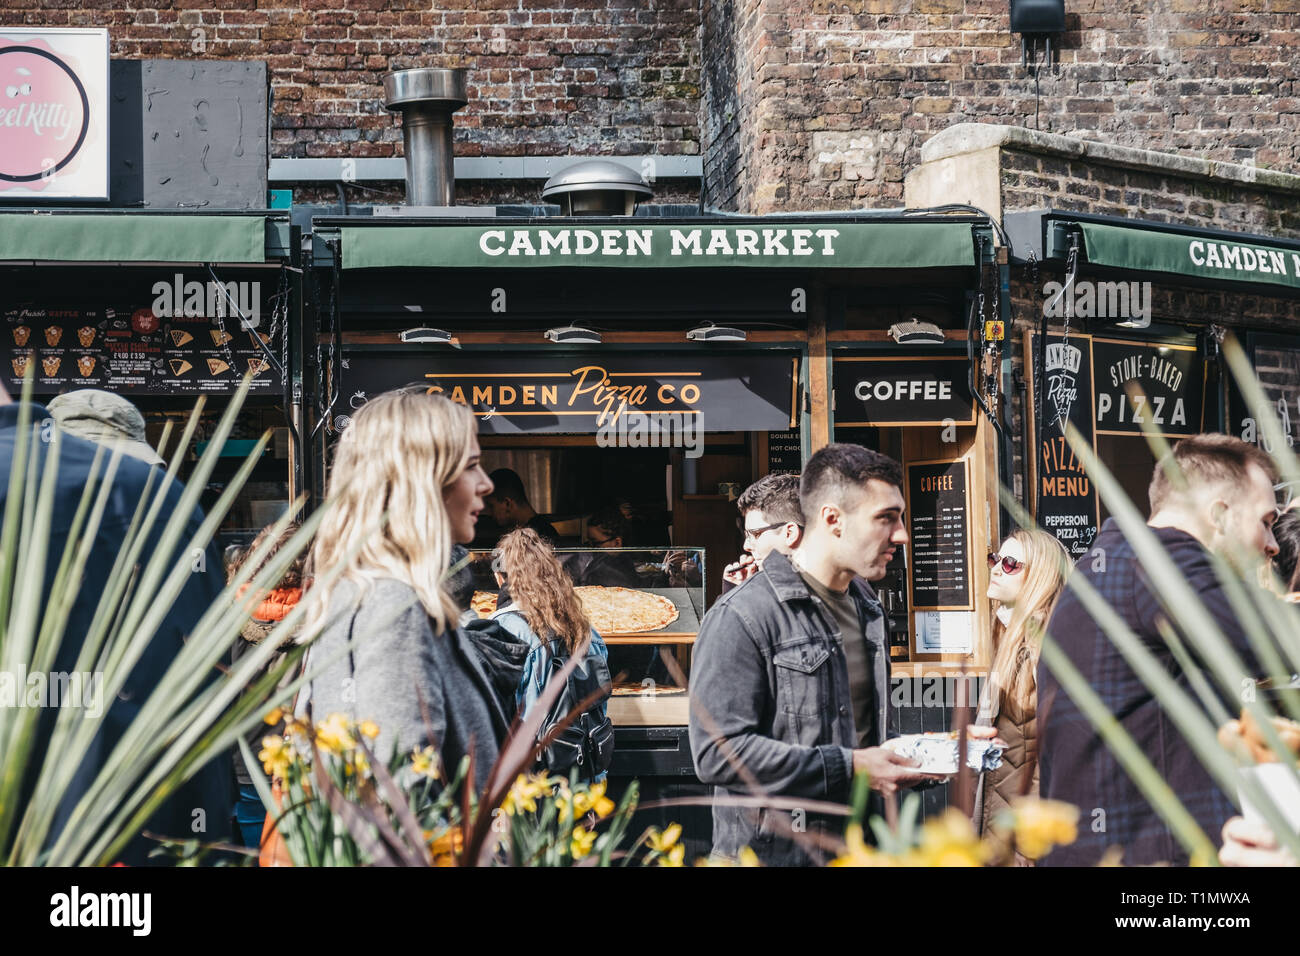 London, UK - March 23,2019: People walking past pizza food stall inside Camden Market, London. Started with 16 stalls in March 1974, Camden Market is  Stock Photo